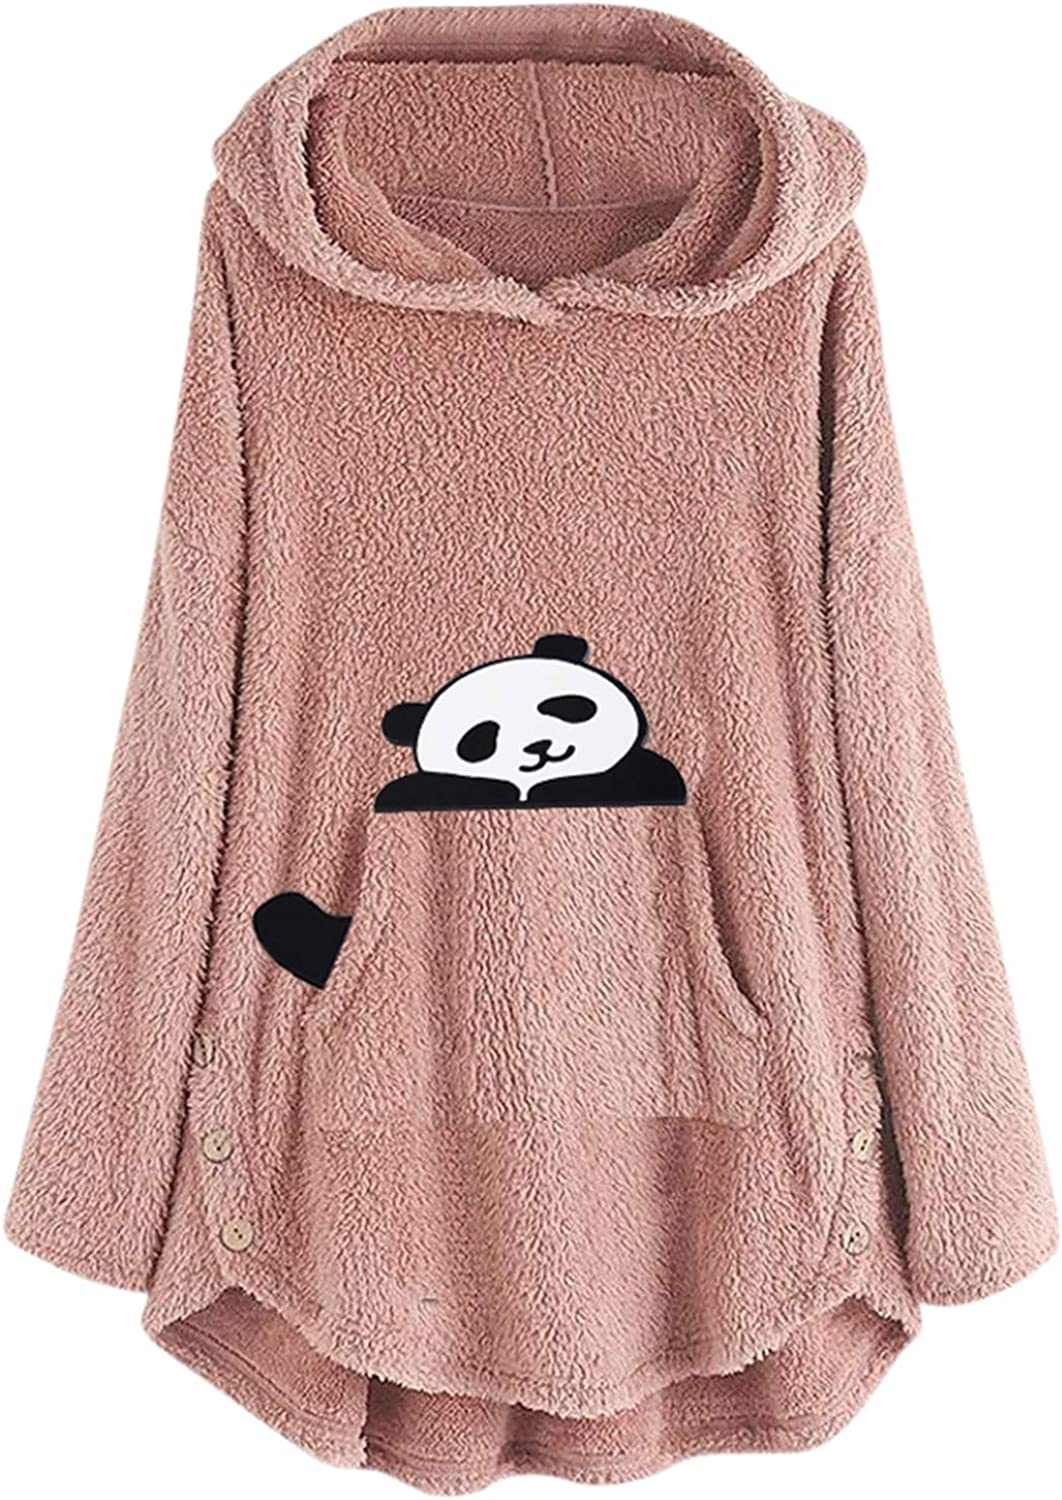 Plus Size Tops for Women Cute Cat Embroidered Blouse Cozy Skin-Friendly and Furry Hoodie Long Sleeve Pockets Shirt